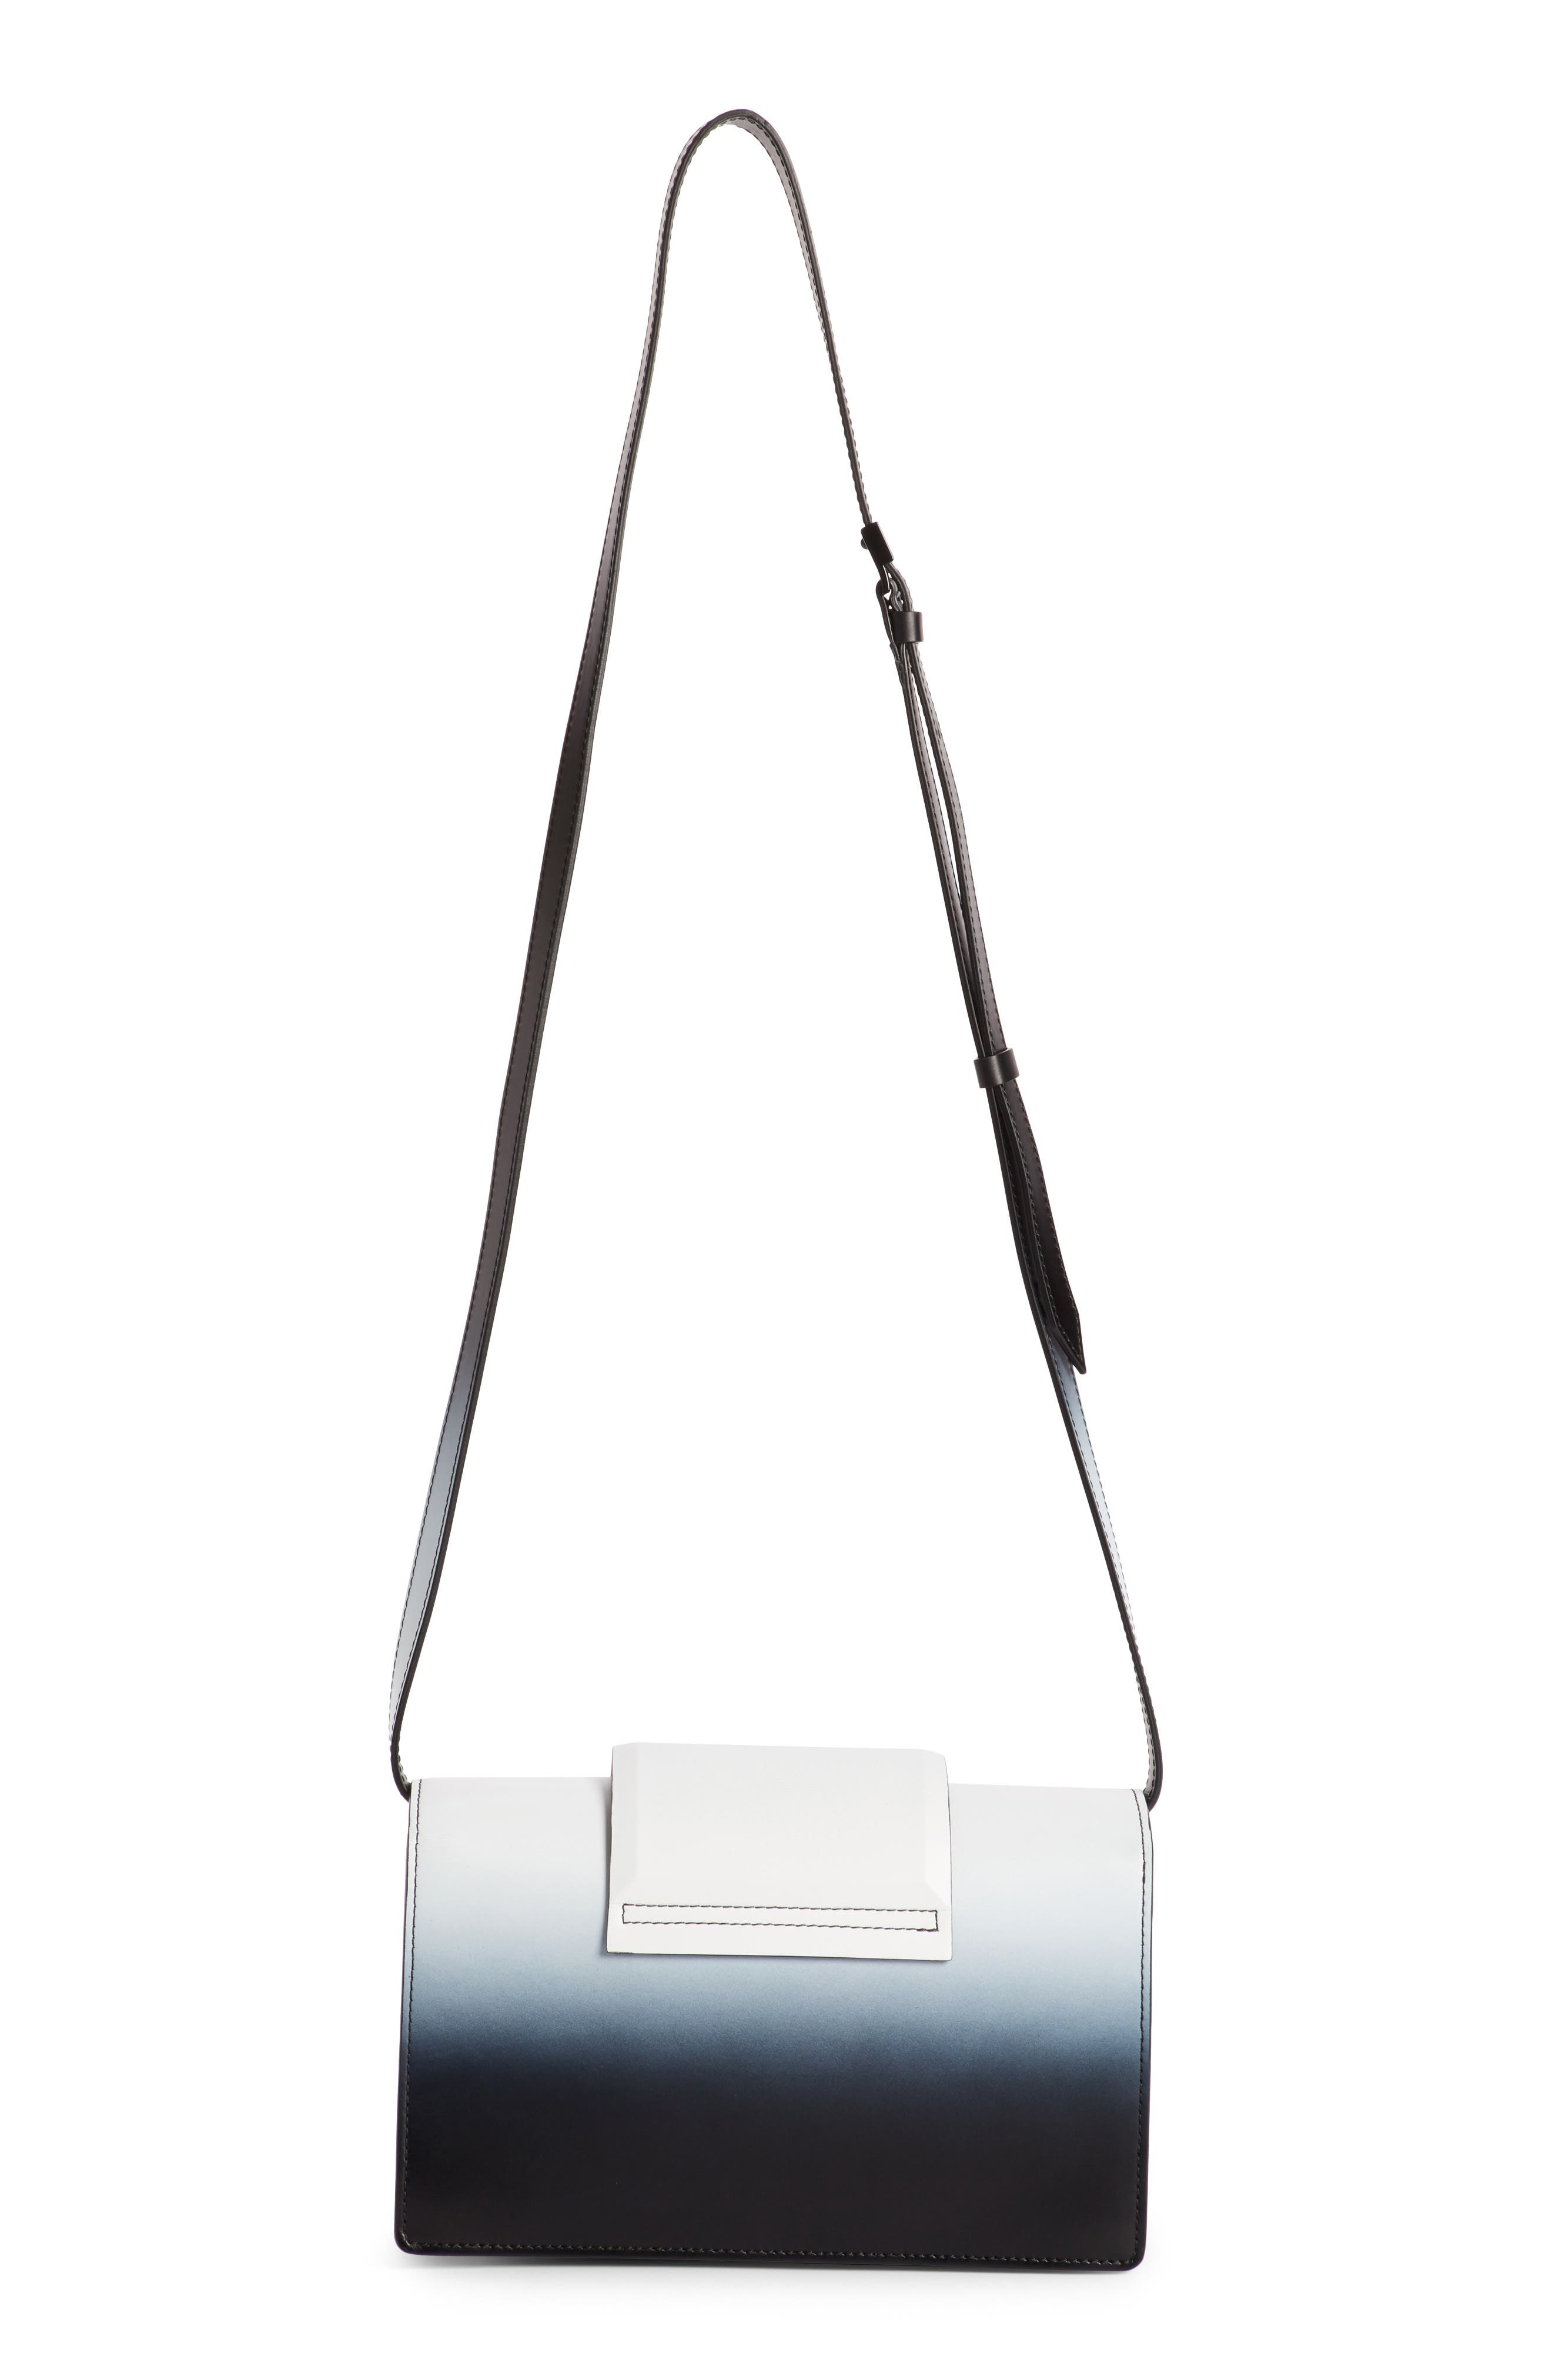 Small Infinity Dégradé Calfskin Shoulder Bag,                             Alternate thumbnail 2, color,                             Black/ White